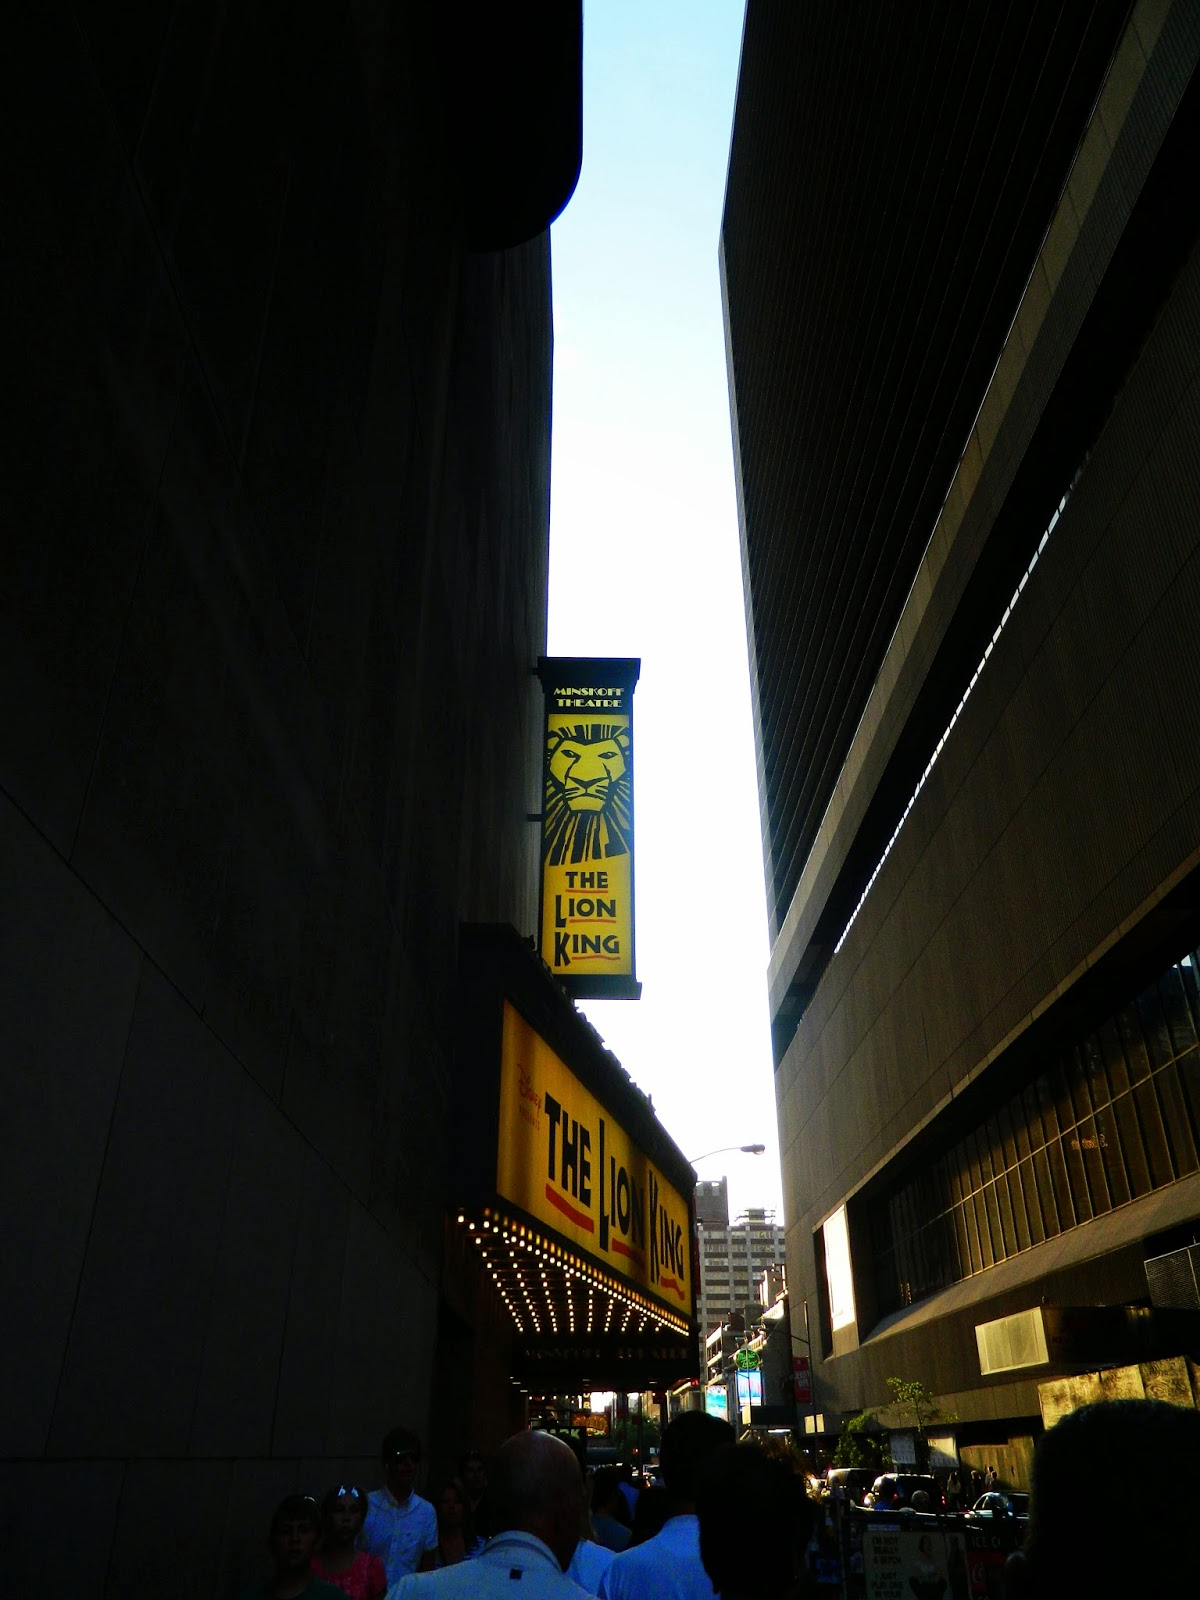 new york city broadway the lion king outside sign